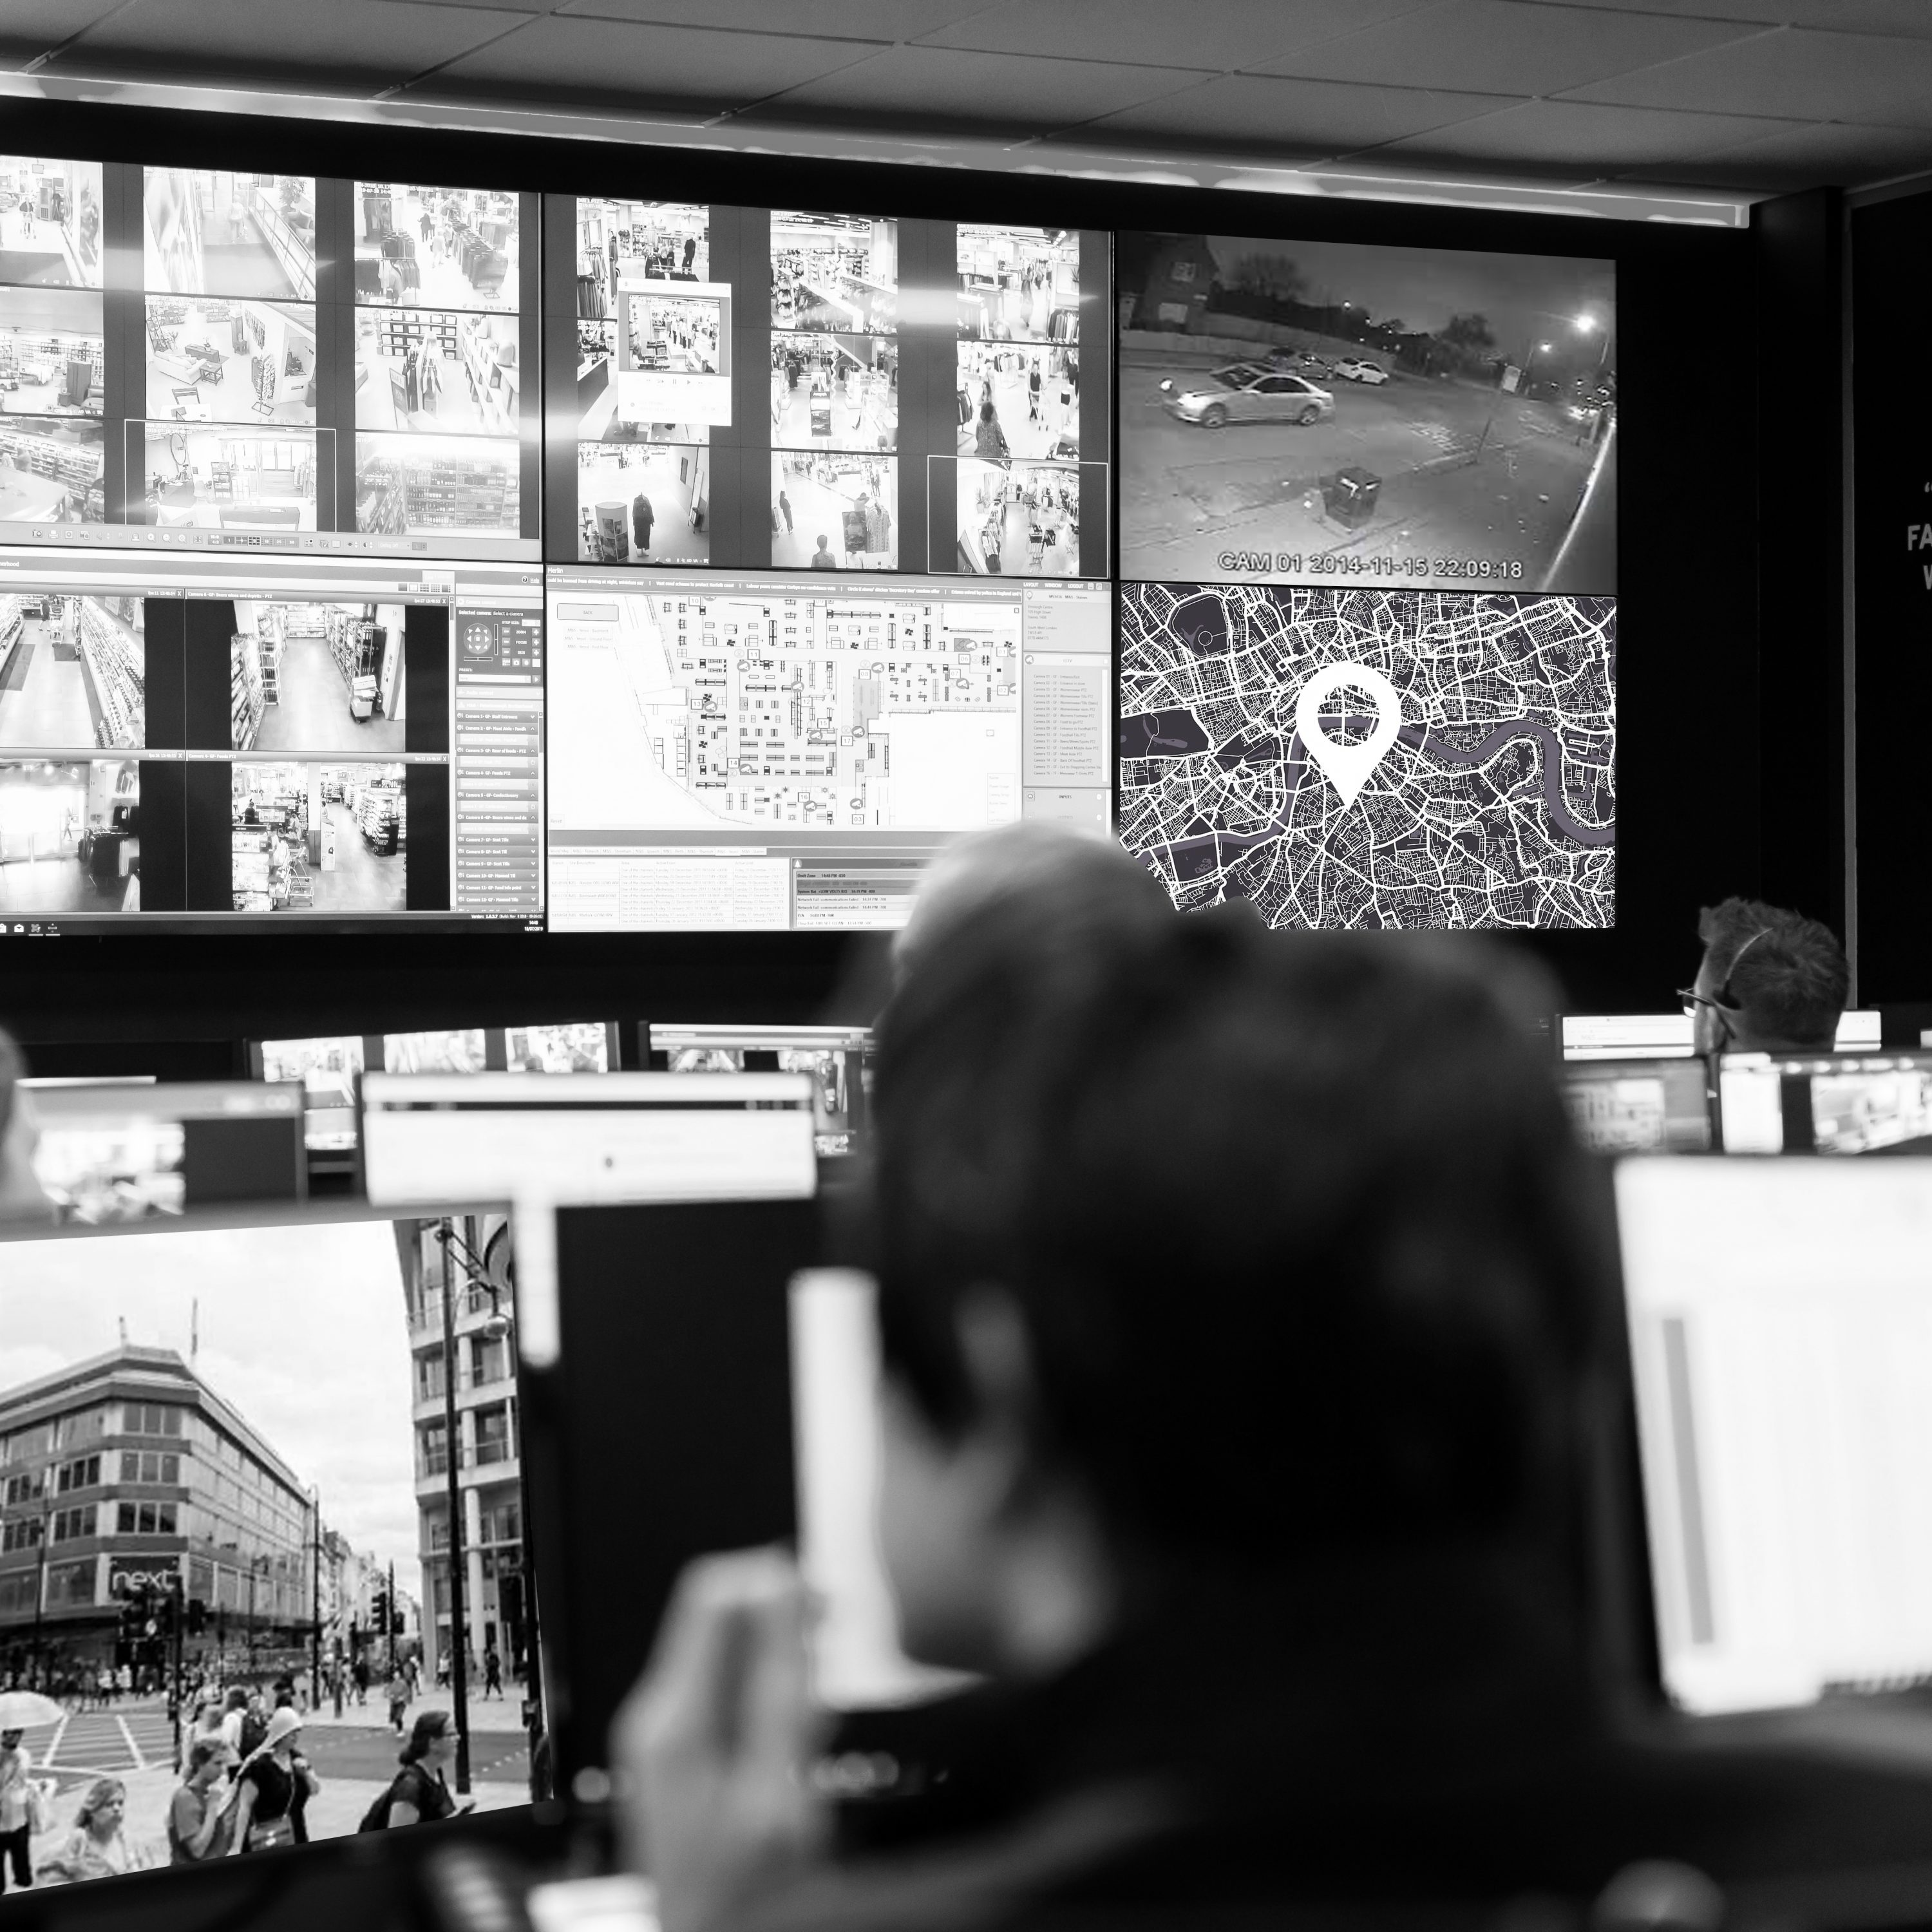 GSOC MAJOR INCIDENT RESPONSE AND COMMUNICATIONS IN LONDON